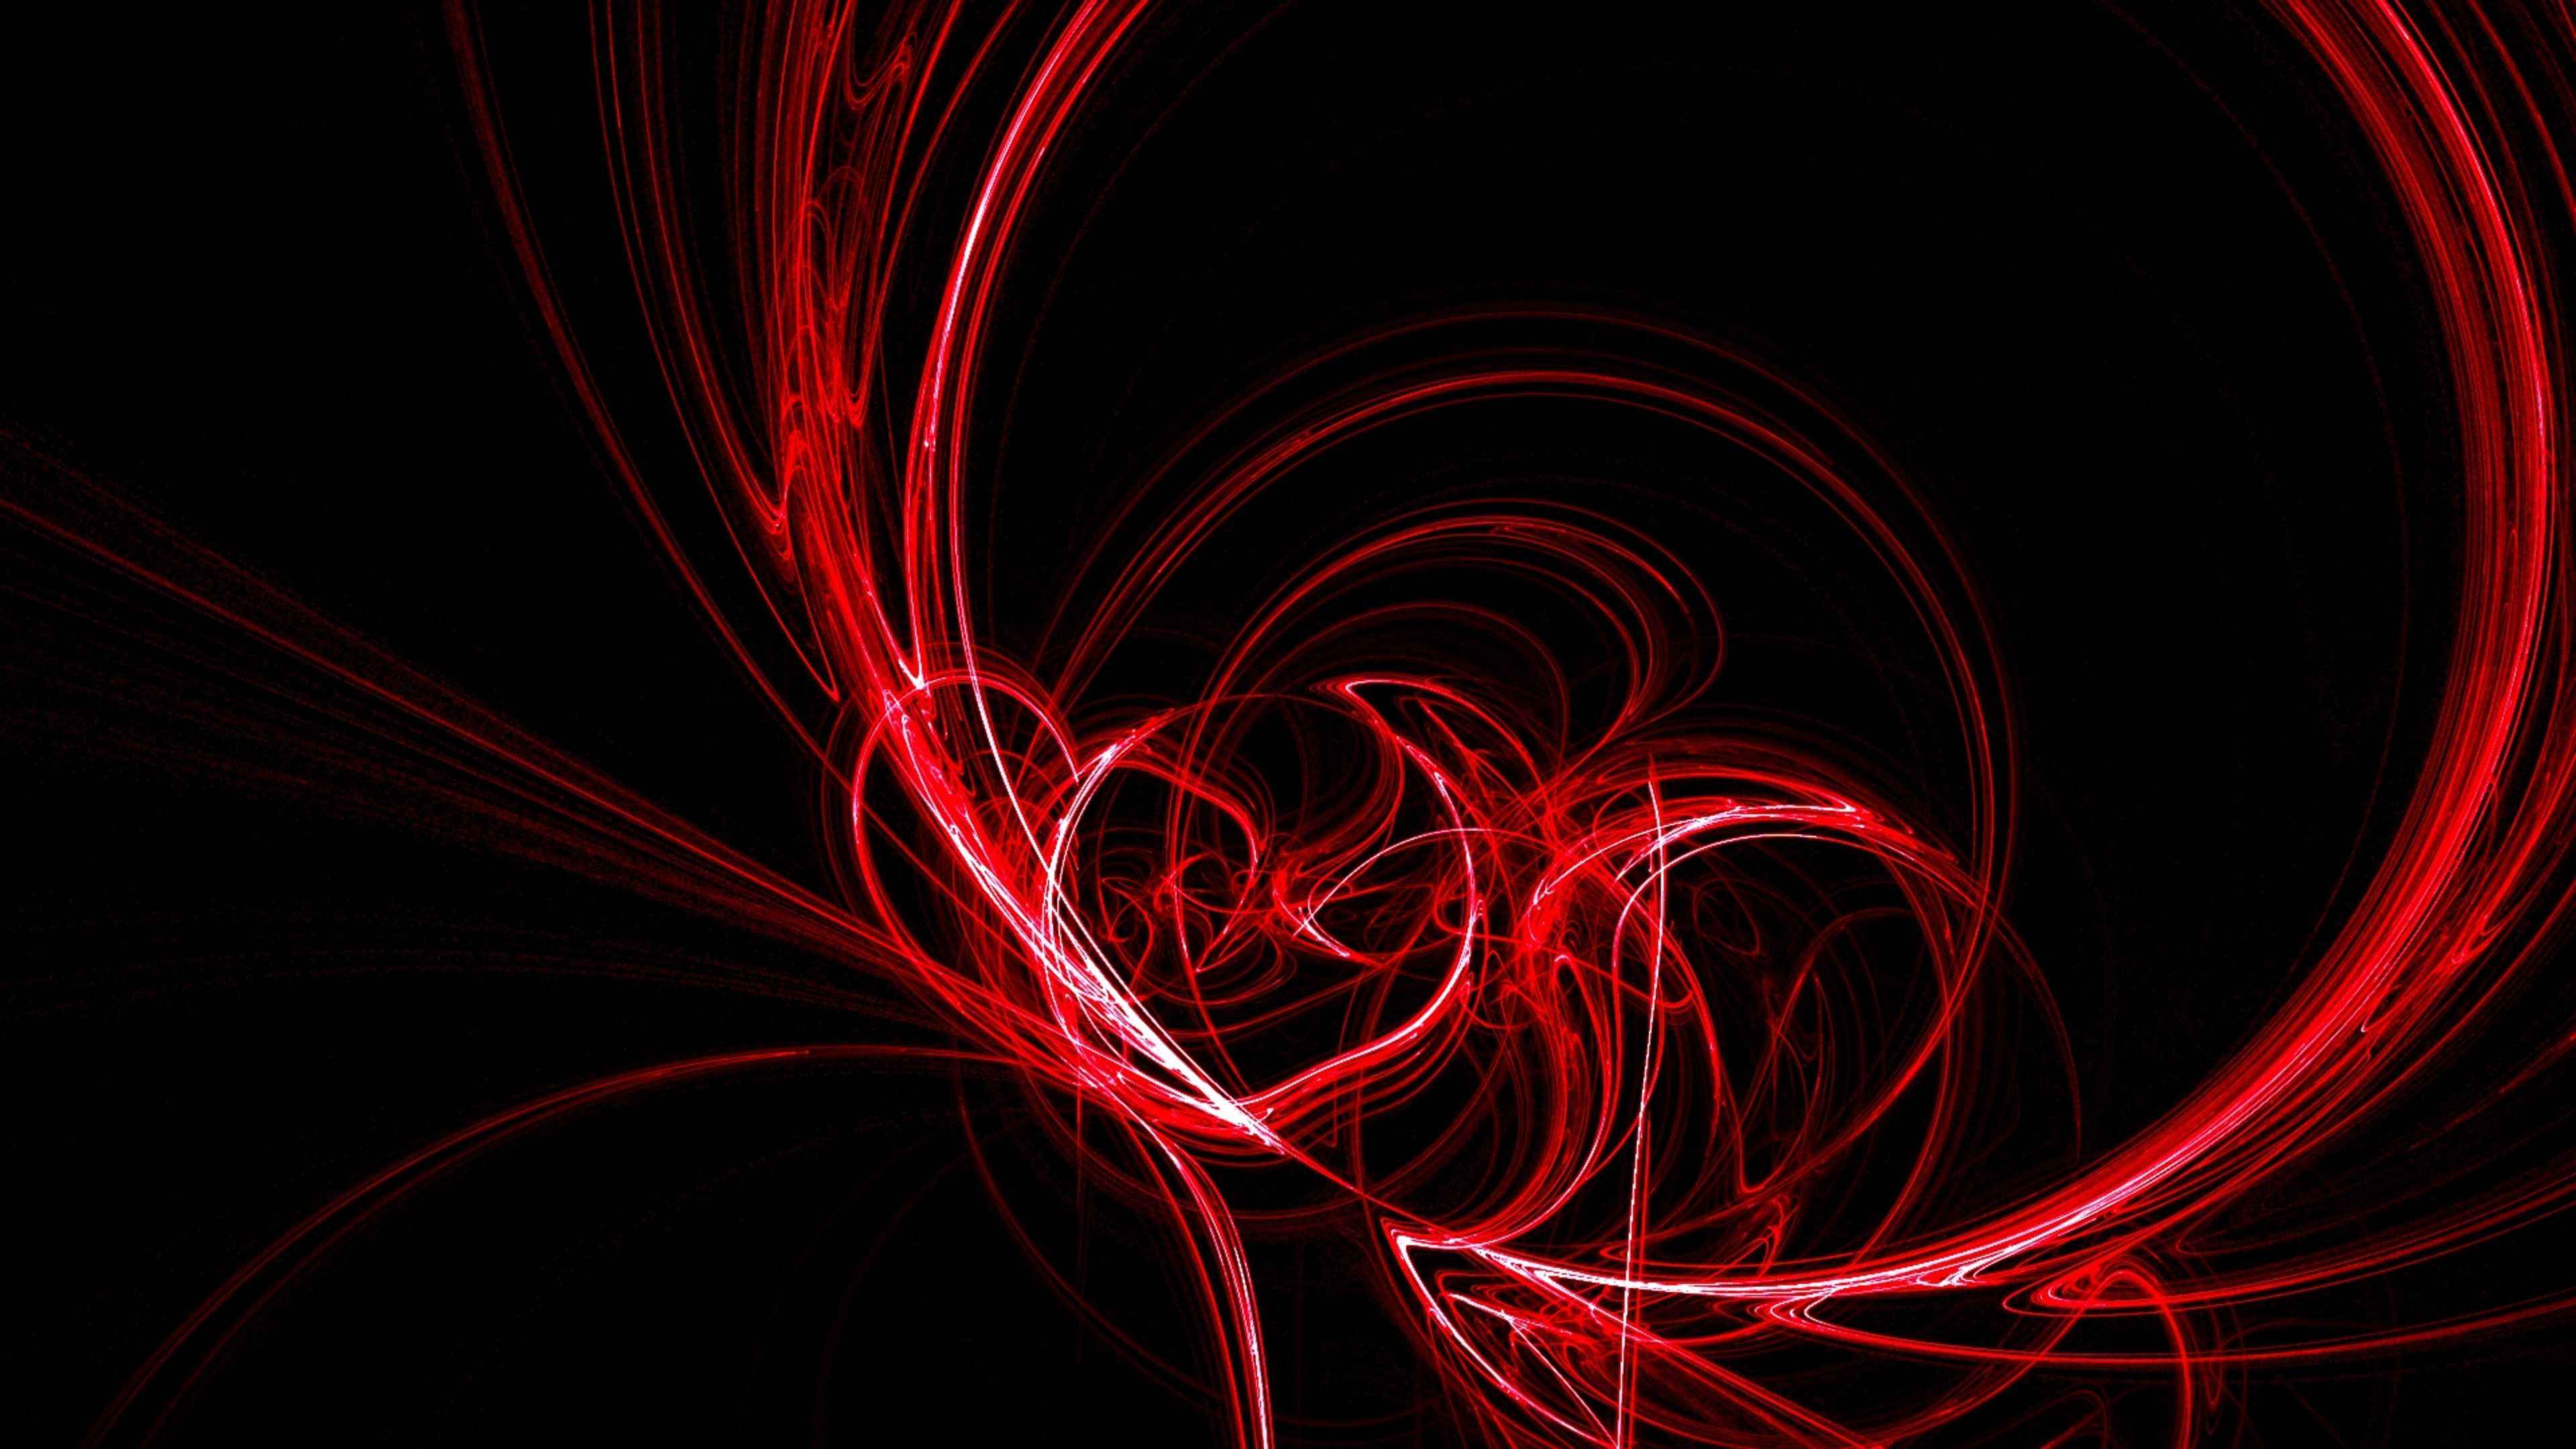 Black and Red Swirl Abstract 4K Wallpapers 4K Wallpaper 3840x2160